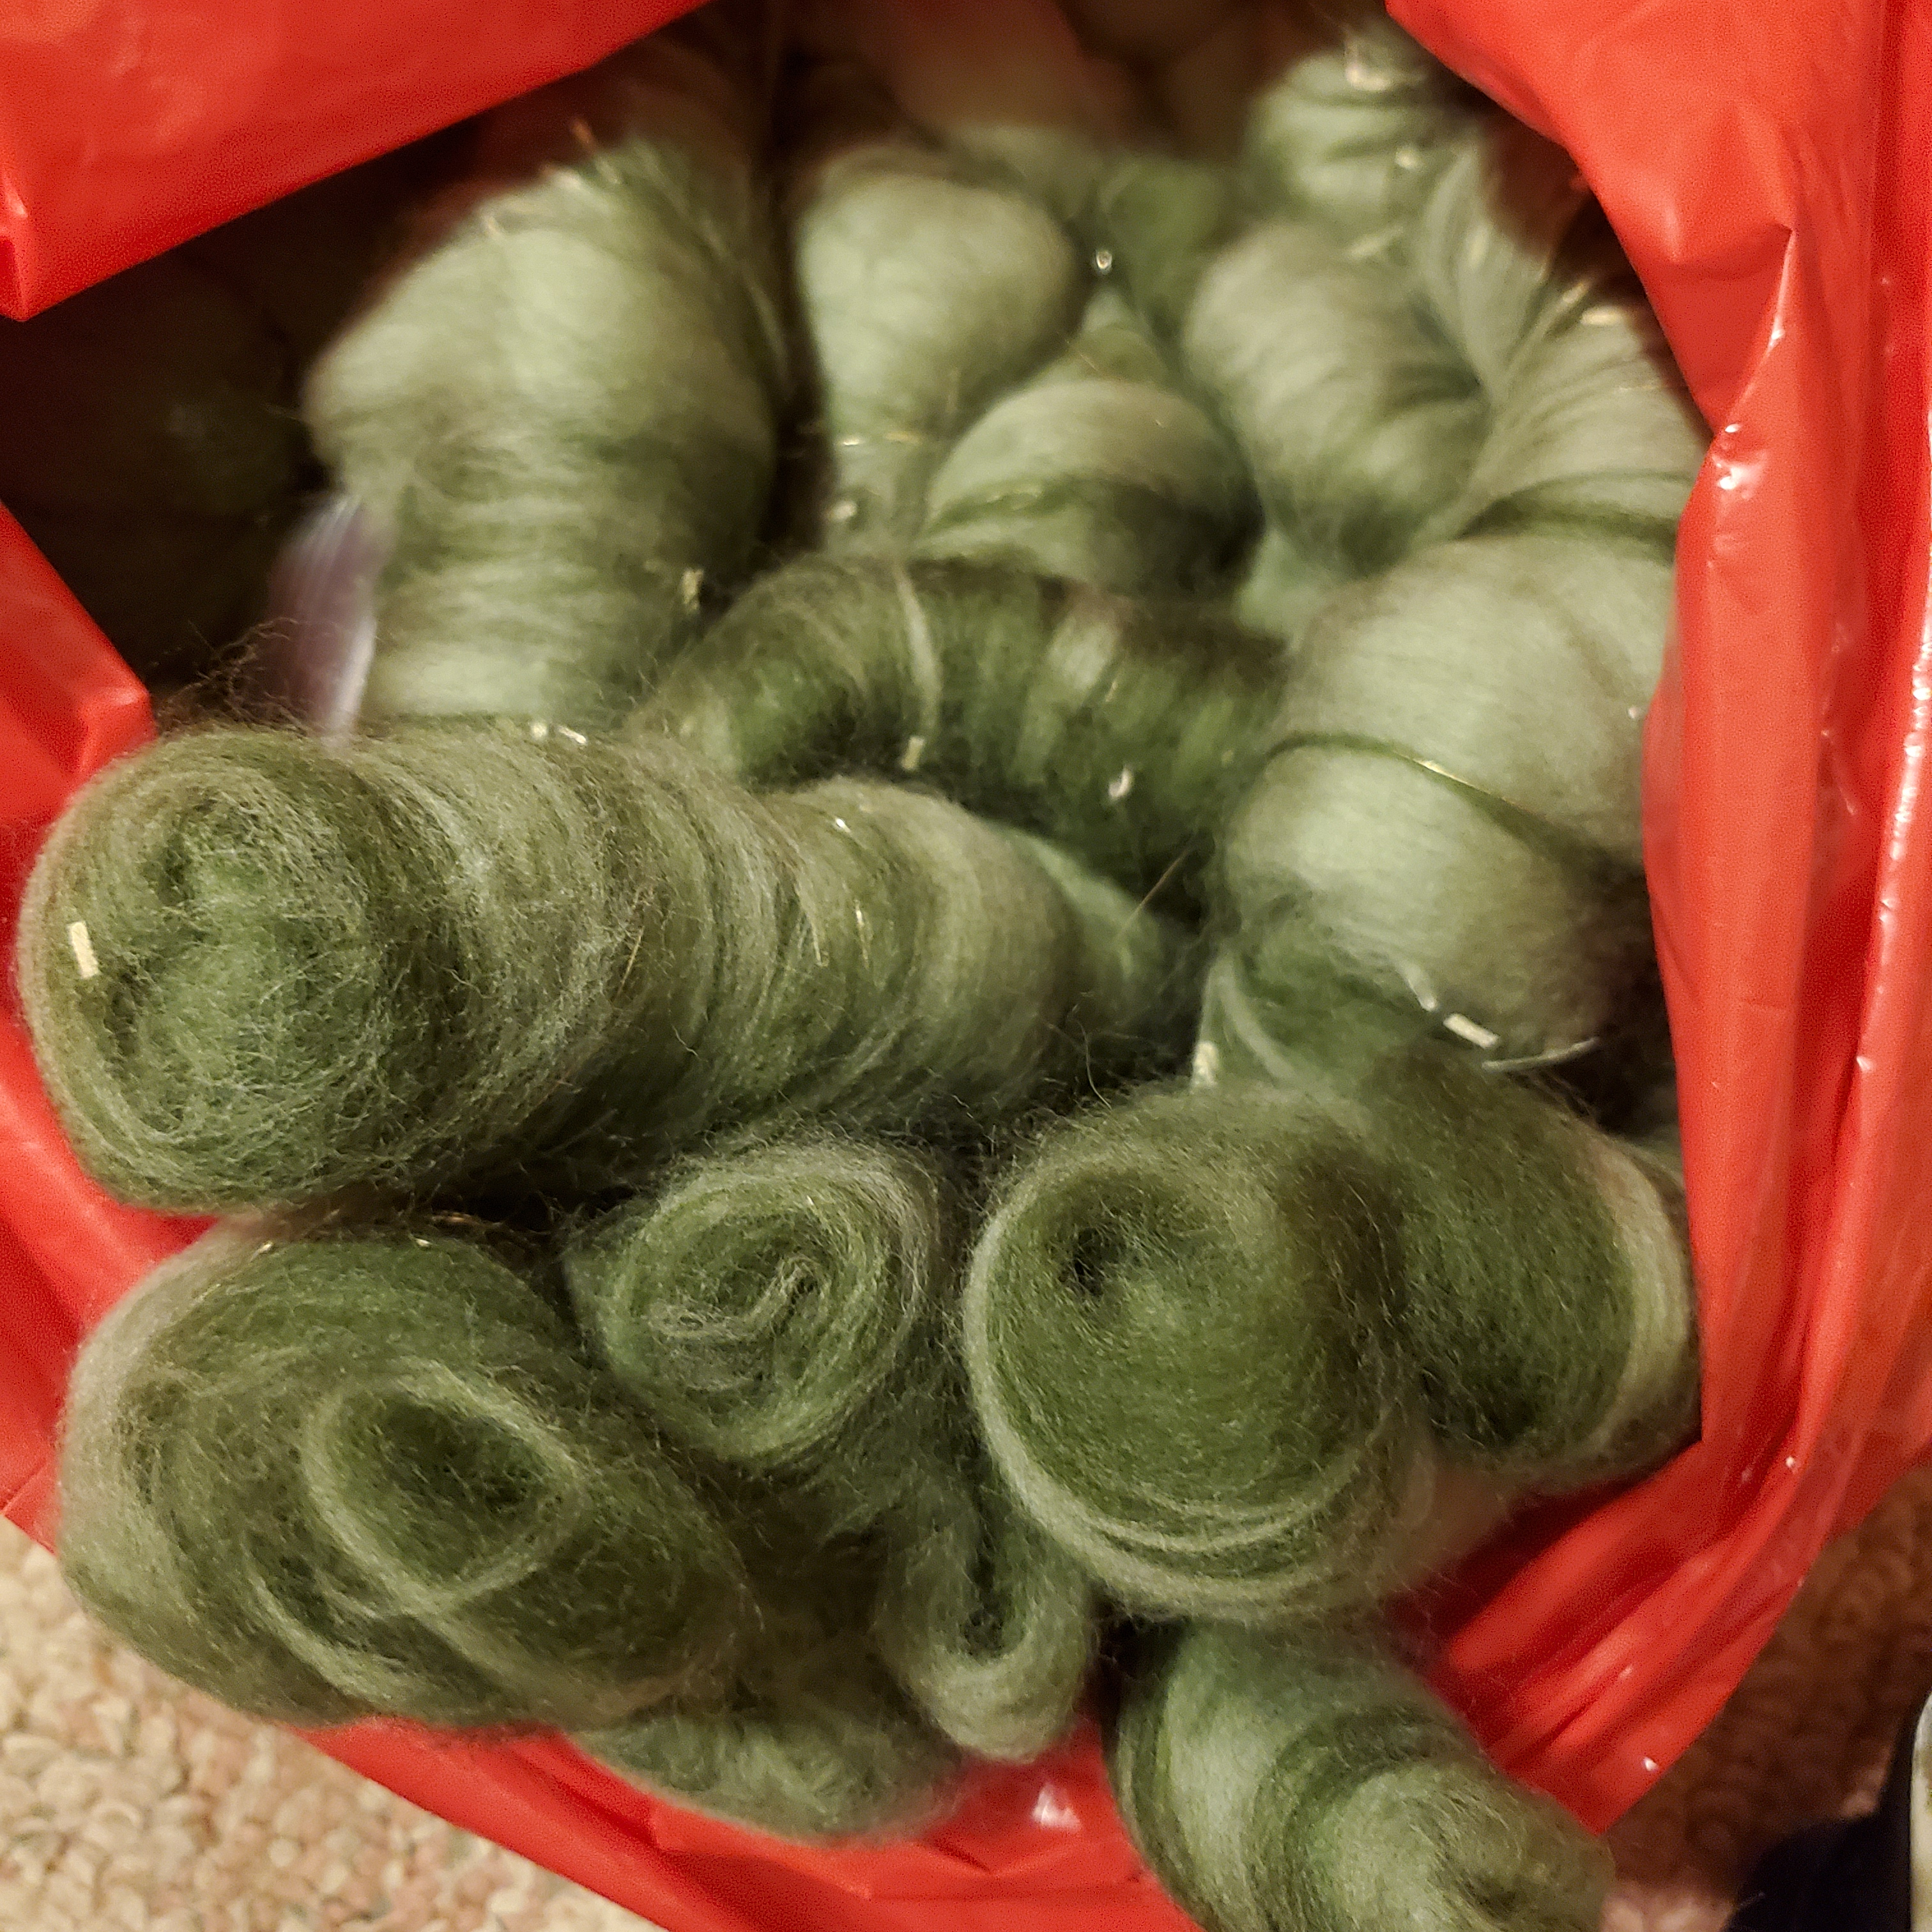 Green art-yarn rolags in a plastic bag.